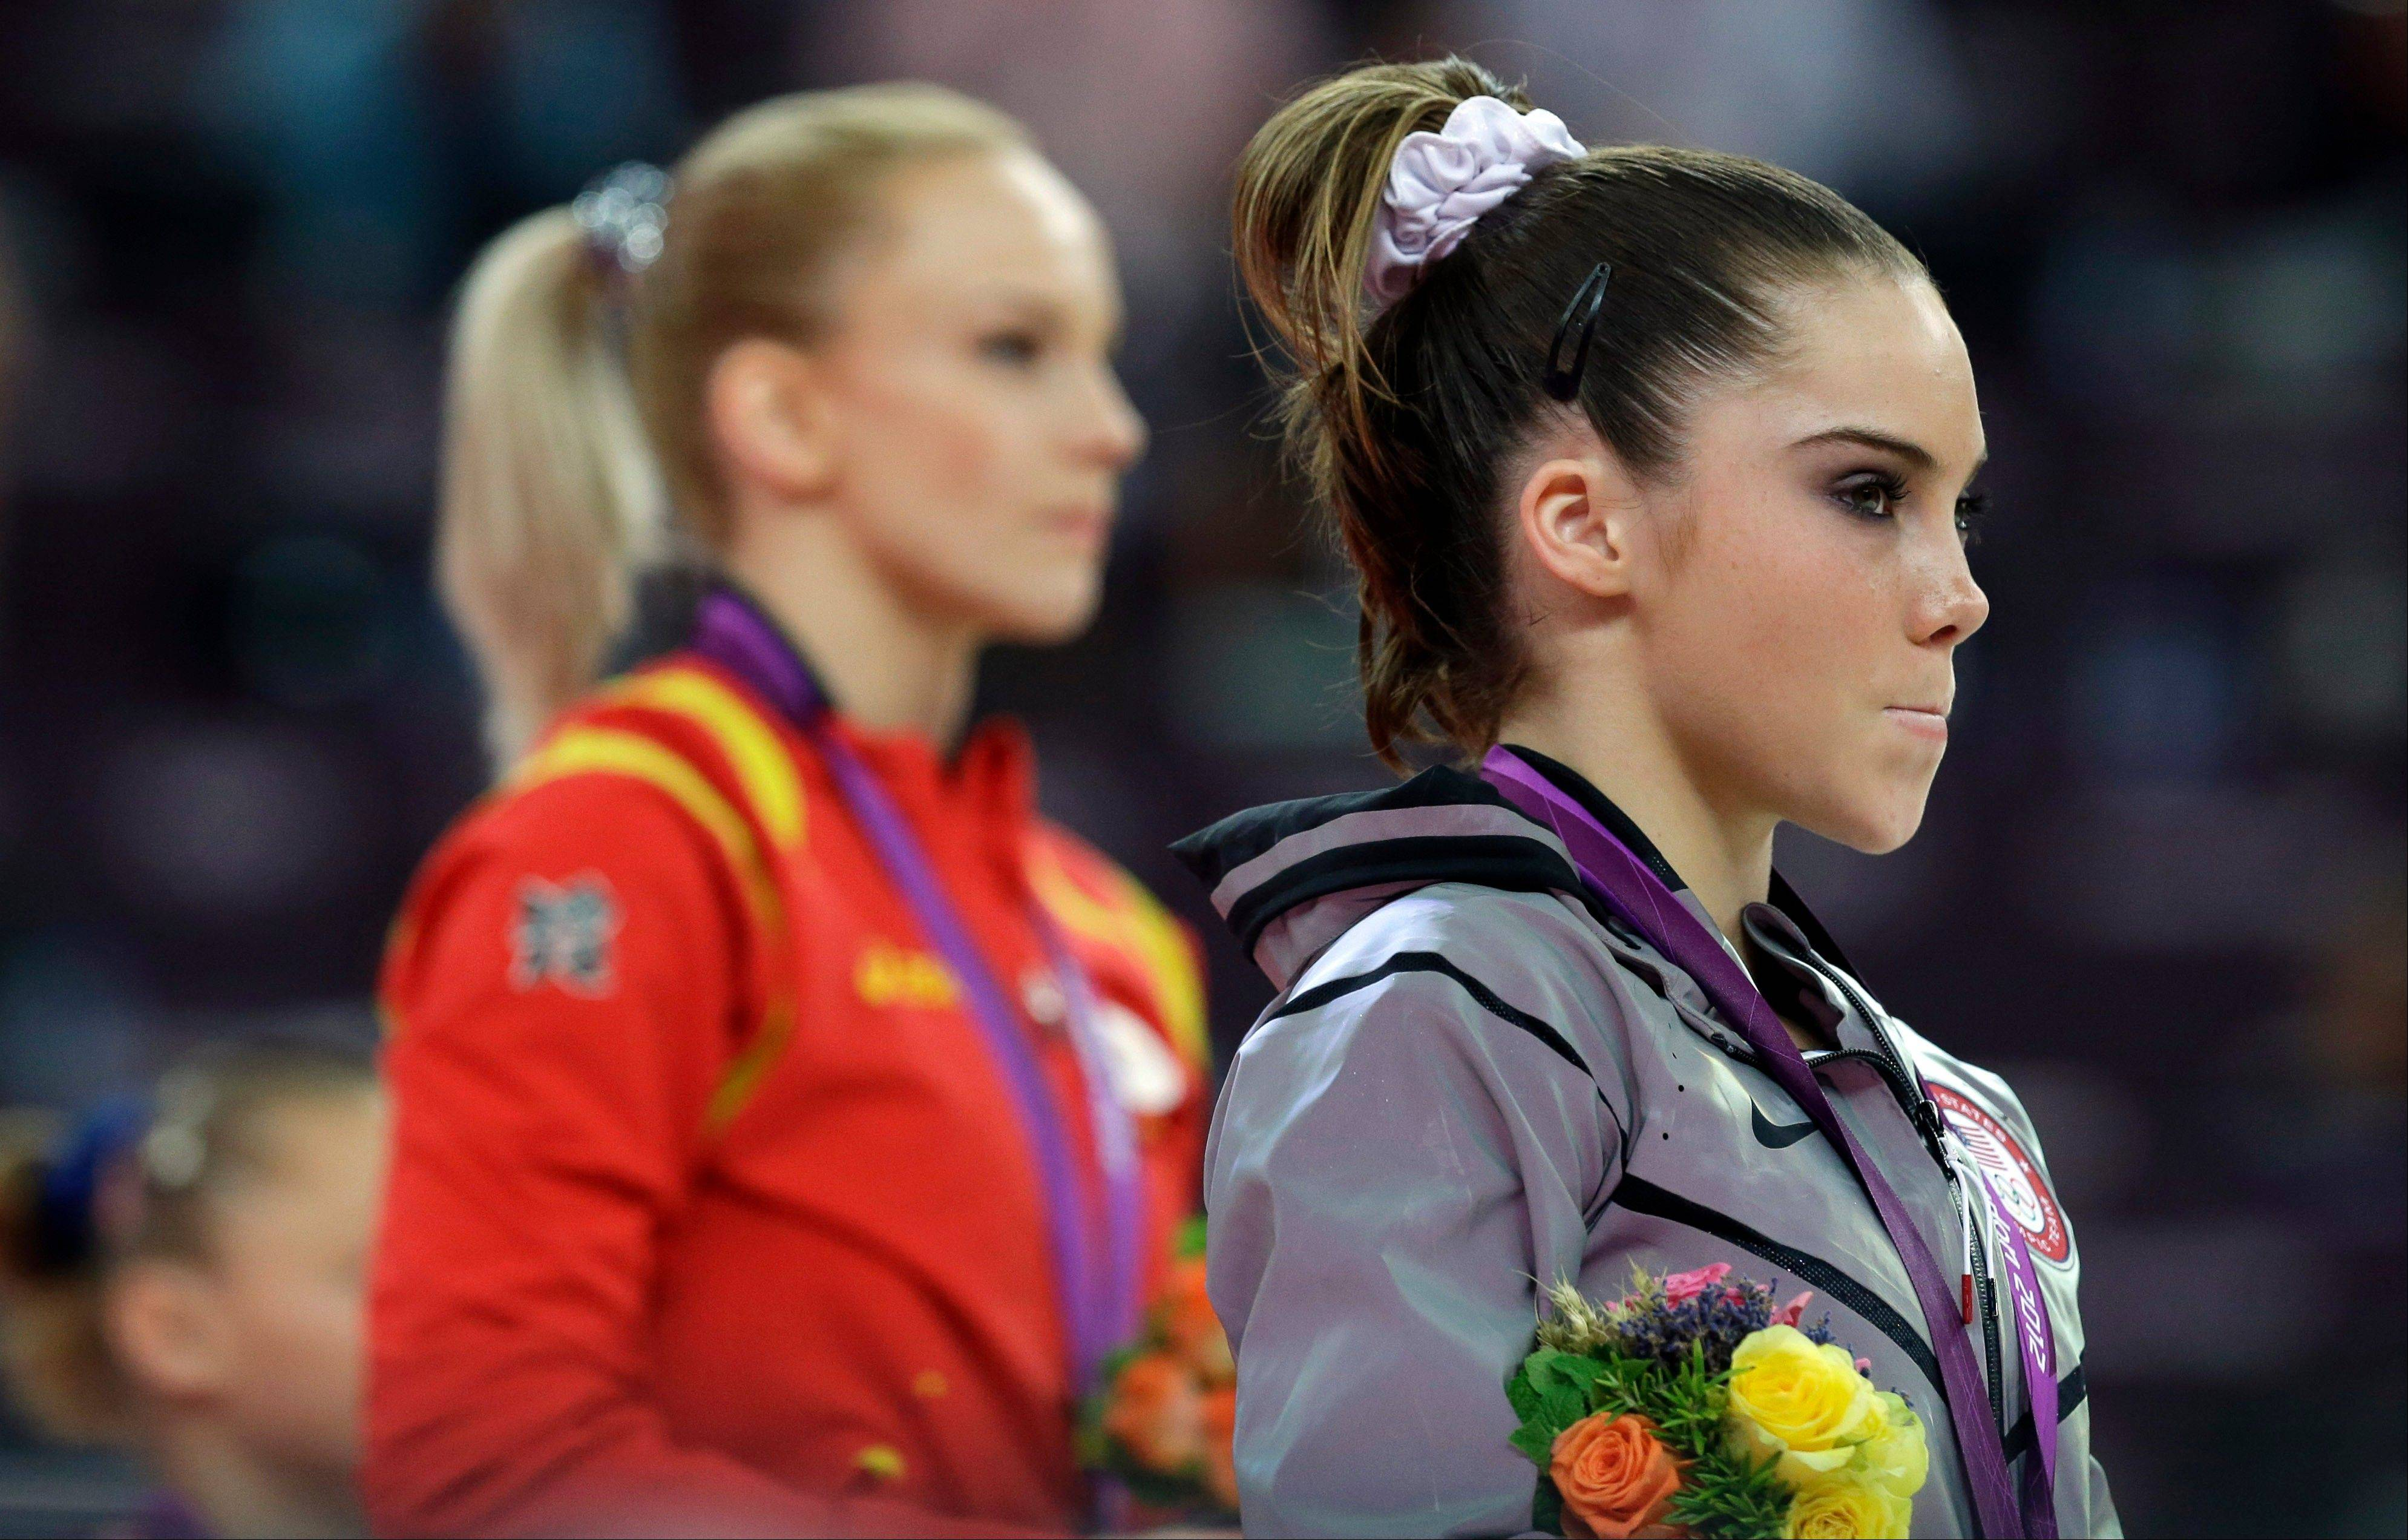 Silver medalist McKayla Maroney, right, stands with gold medalist Sandra Raluca Izbasa of Romania during the podium ceremony for women�s vault finals at the 2012 Summer Olympics in London.